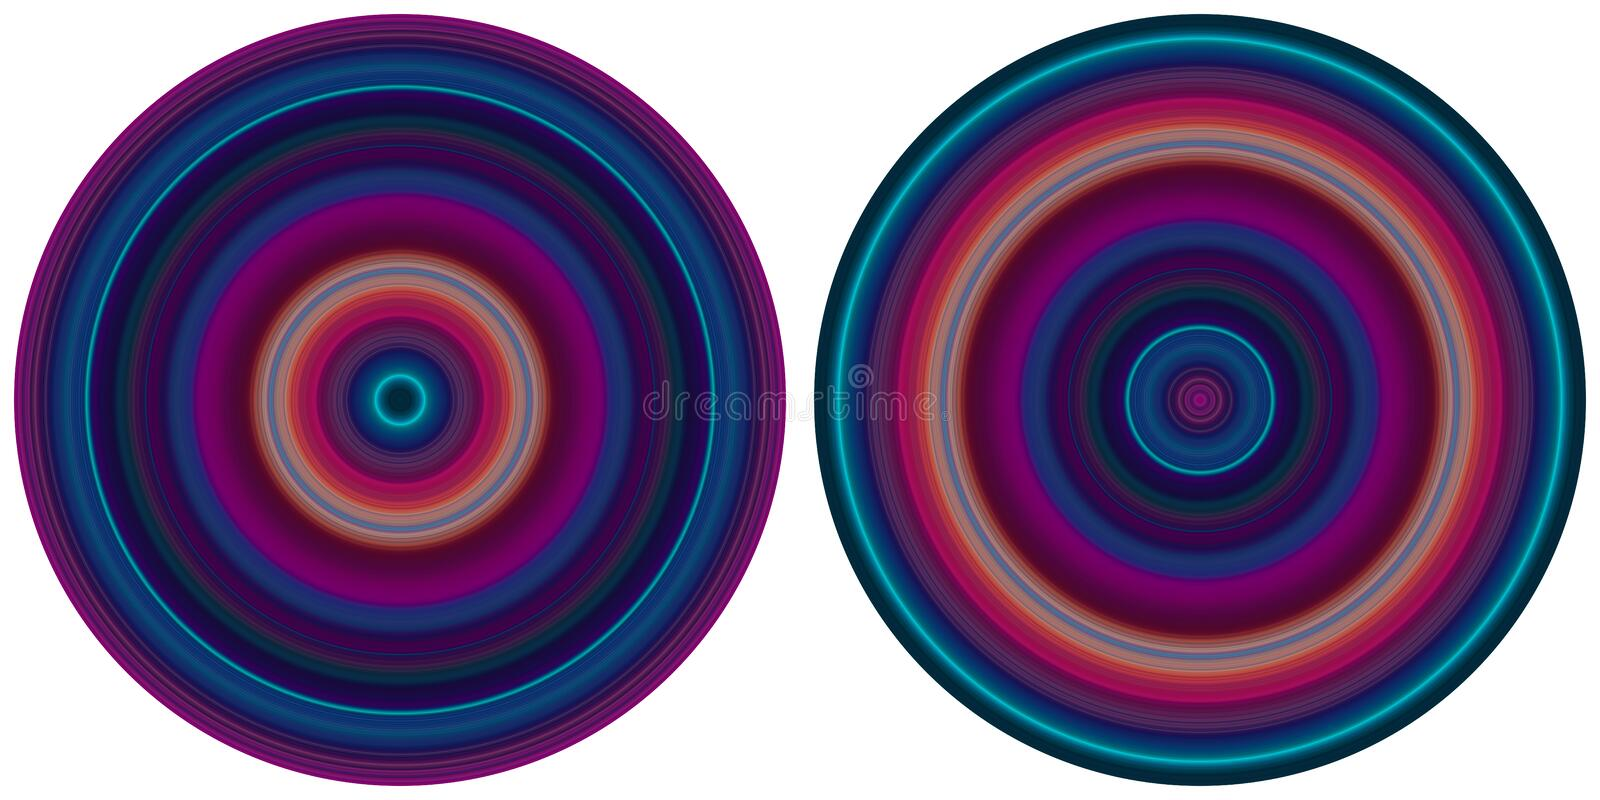 Set of 2 bright abstract  bright radial striped circles in purple and blue tones isolated on white background. Texture with circular lines. Vivid round pattern royalty free illustration